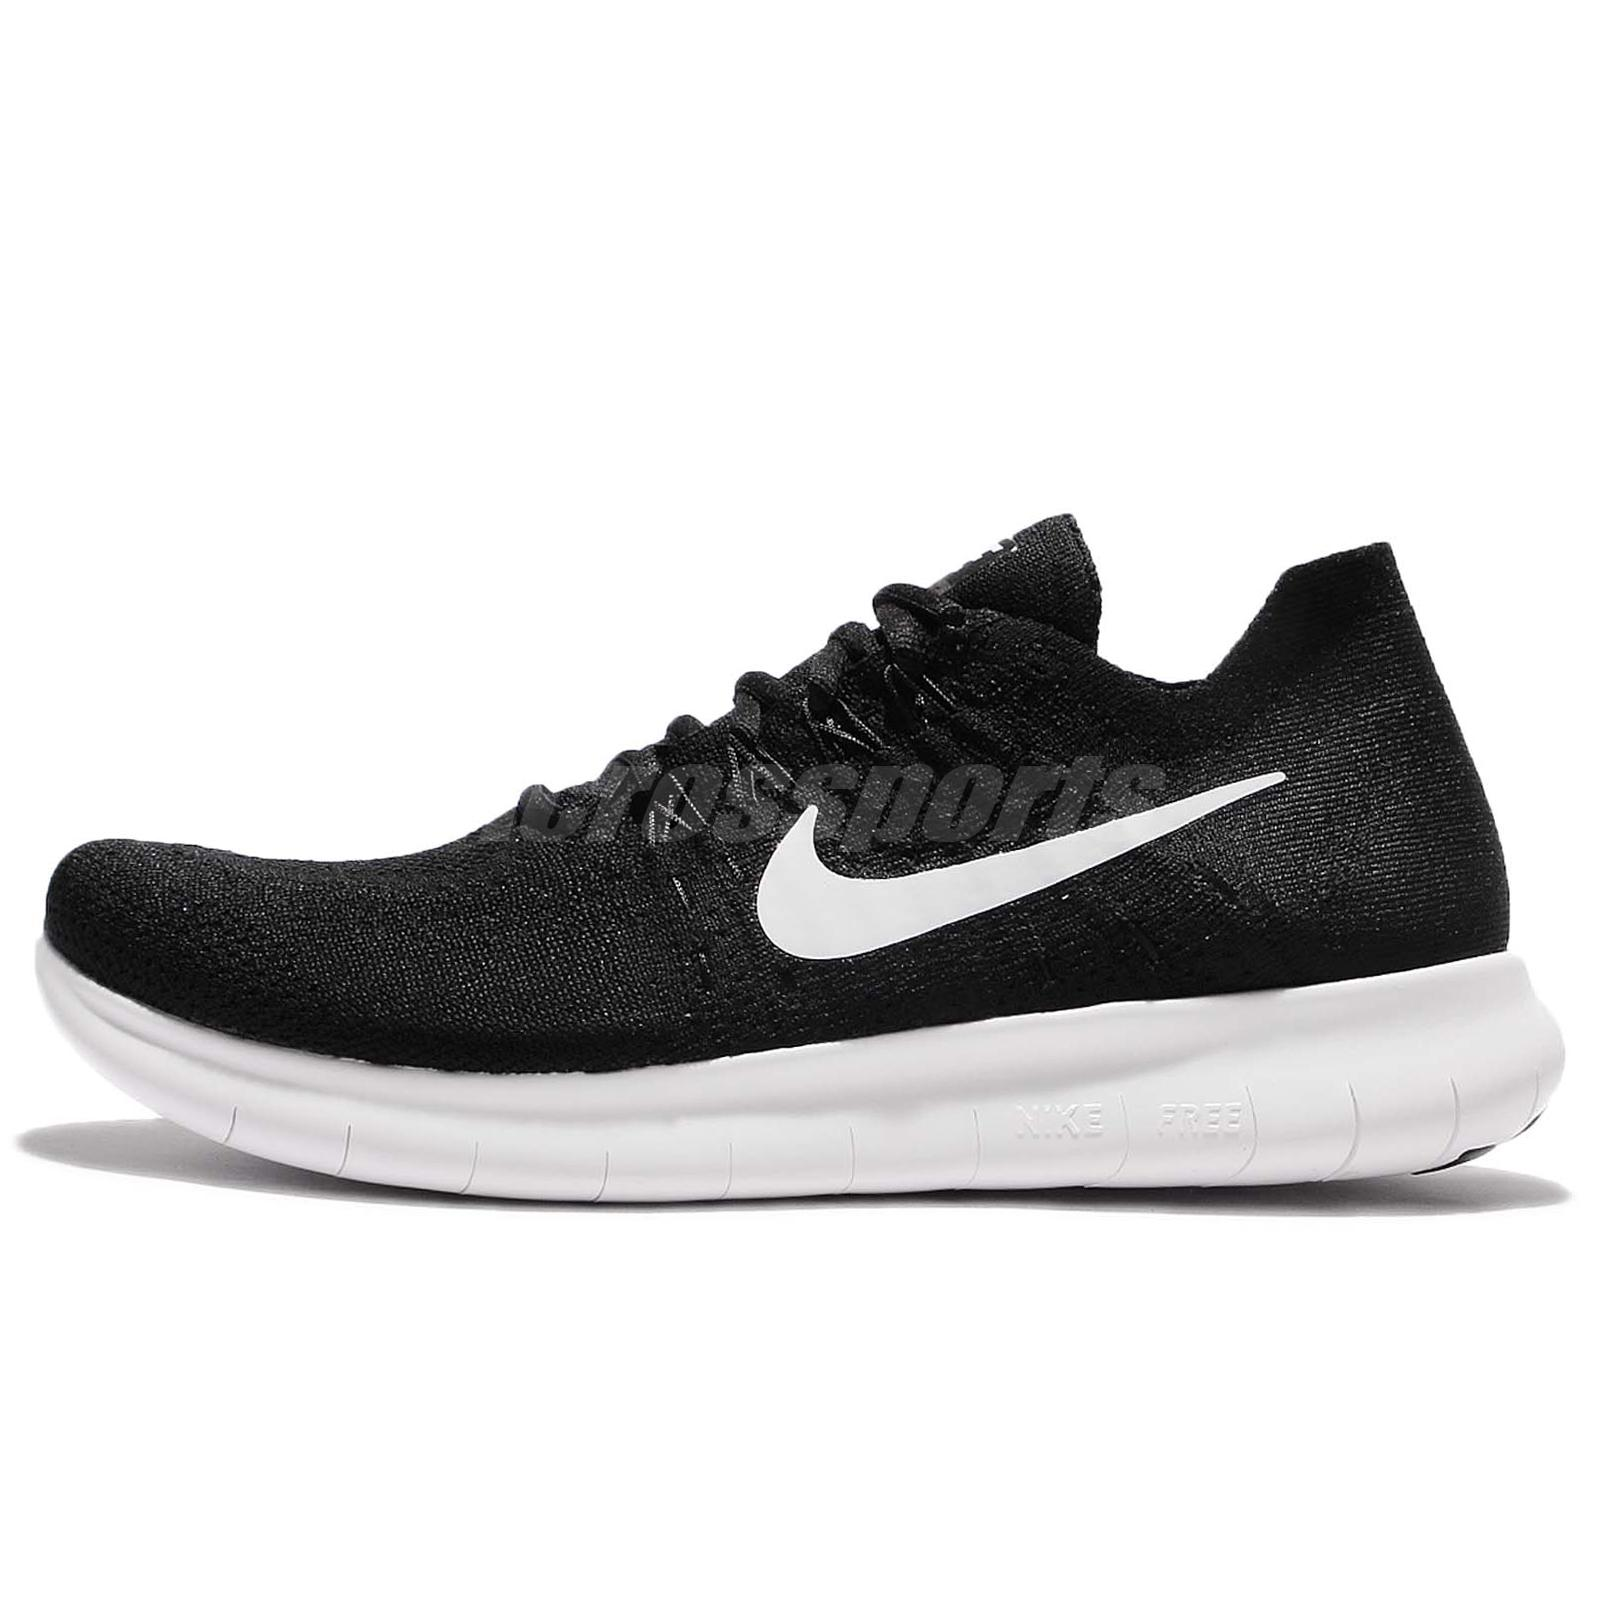 nike free rn flyknit 2017 run black white men running. Black Bedroom Furniture Sets. Home Design Ideas